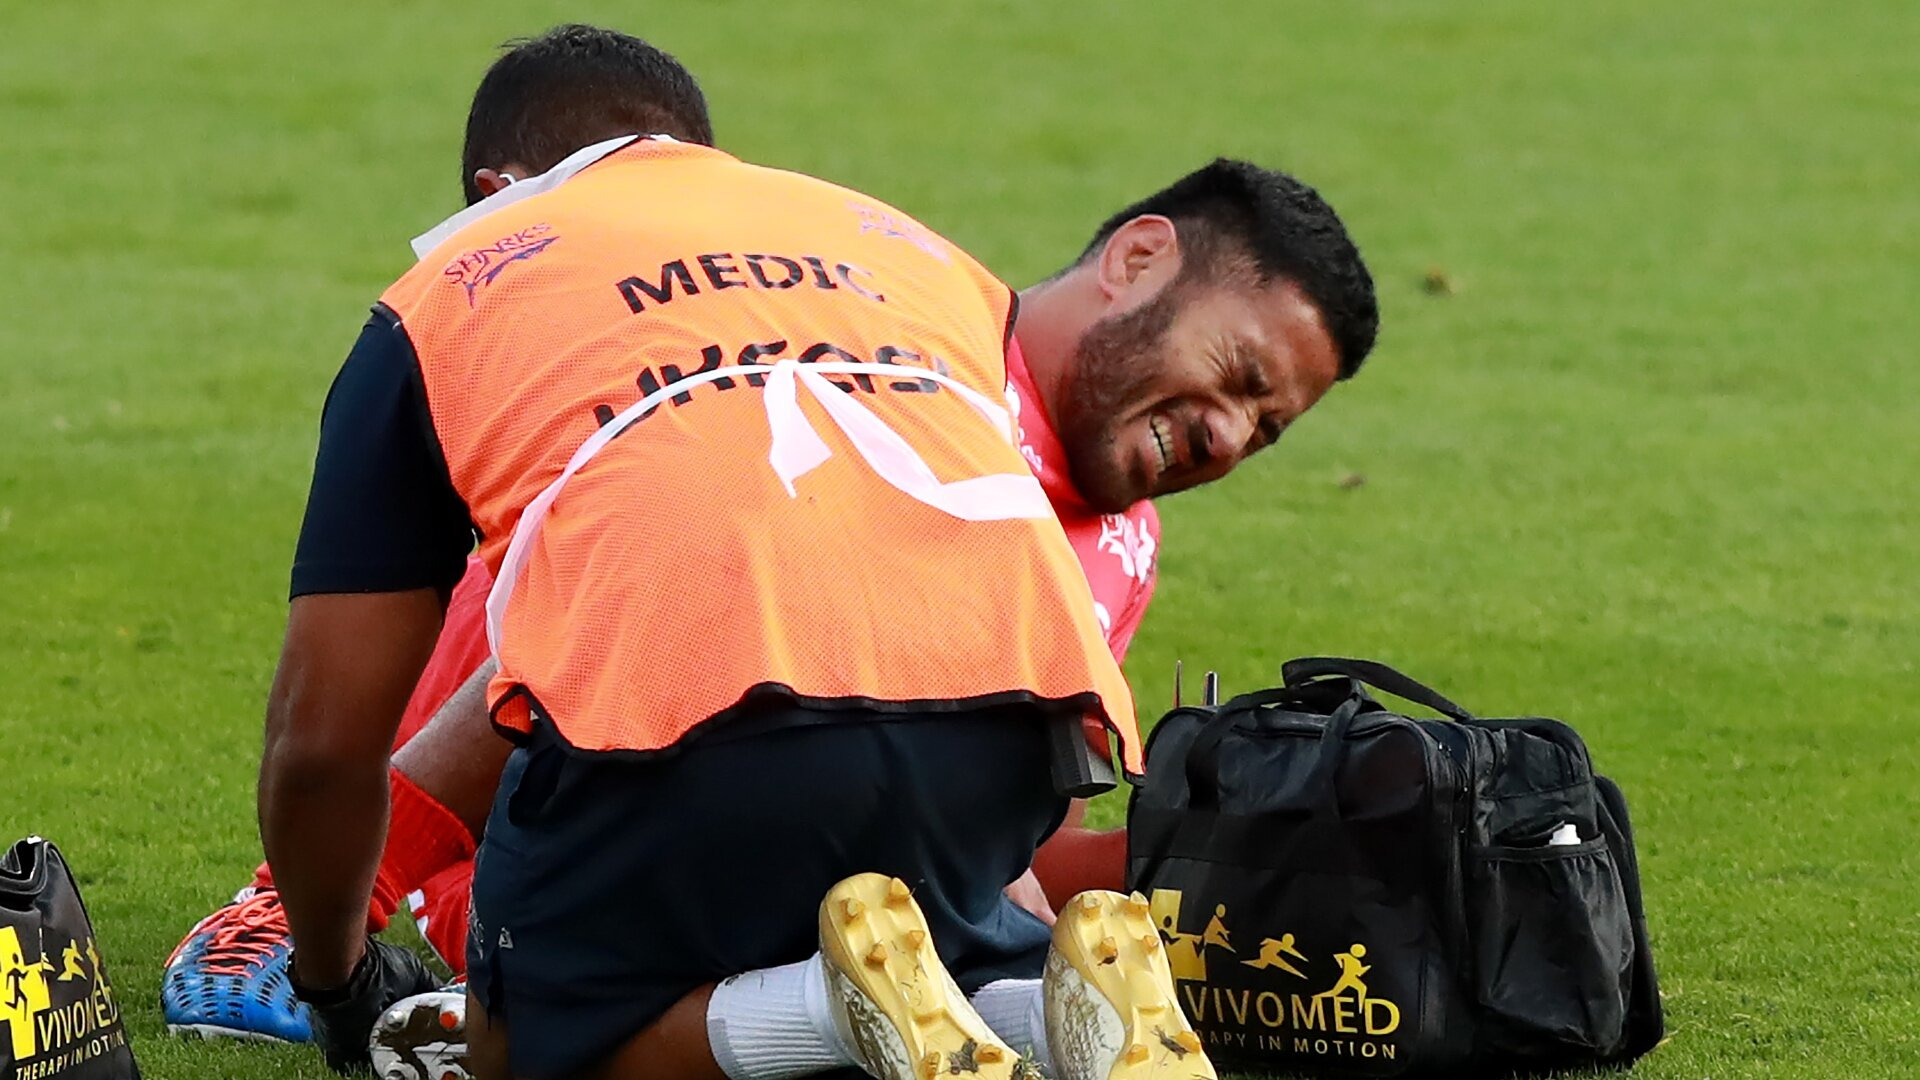 UPDATED: Huge blow for England as Manu Tuilagi ruled out for 6 months